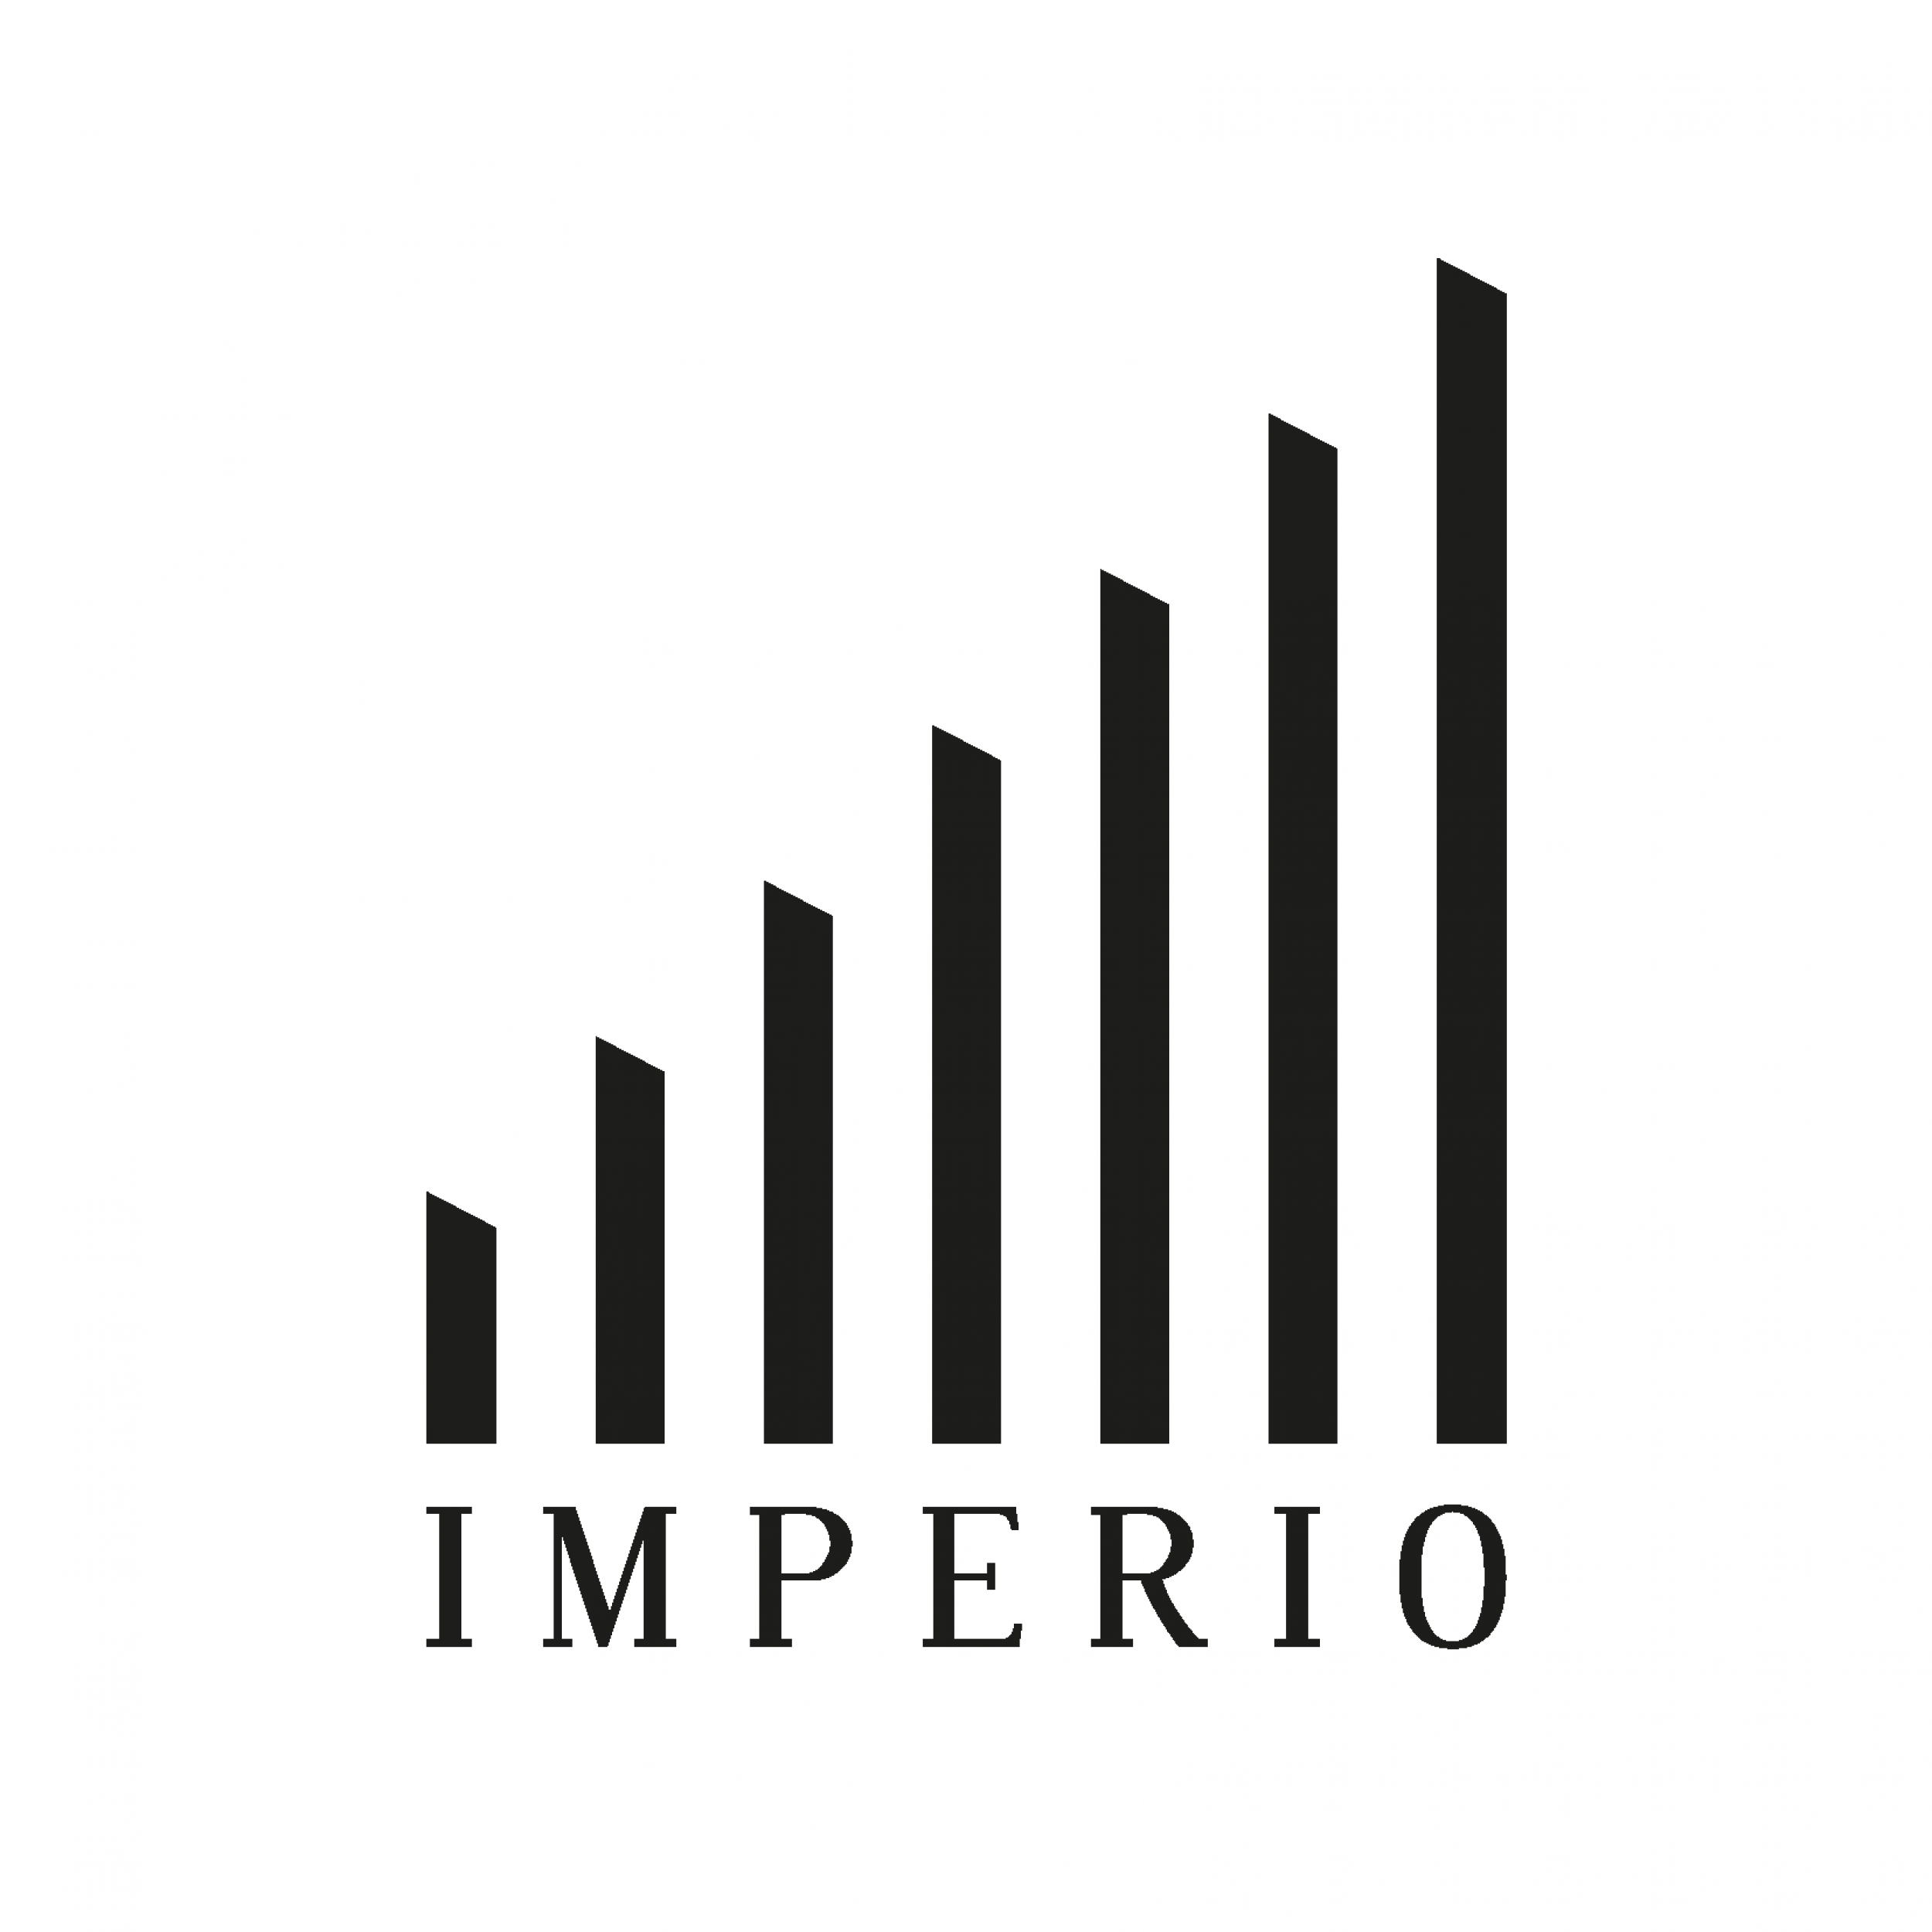 IMPERIO_Page_1